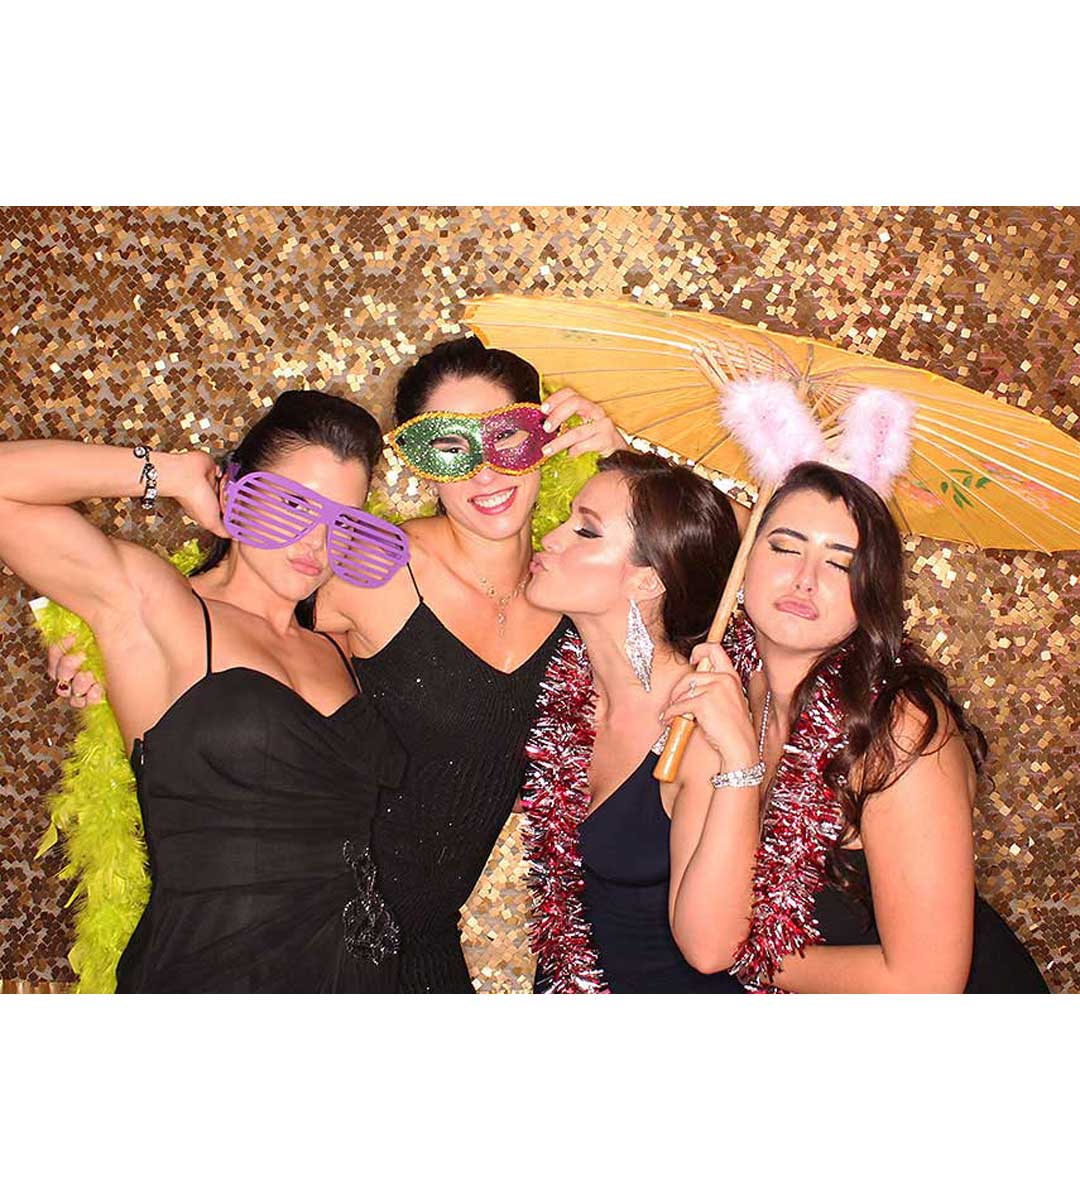 Add some shimmer and color to the photo booth background of every photo with our physical background options! These backdrops are perfect for any type of event or celebration! Pick from a large variety of streamer color and different textures to extend your style or event theme into every picture.